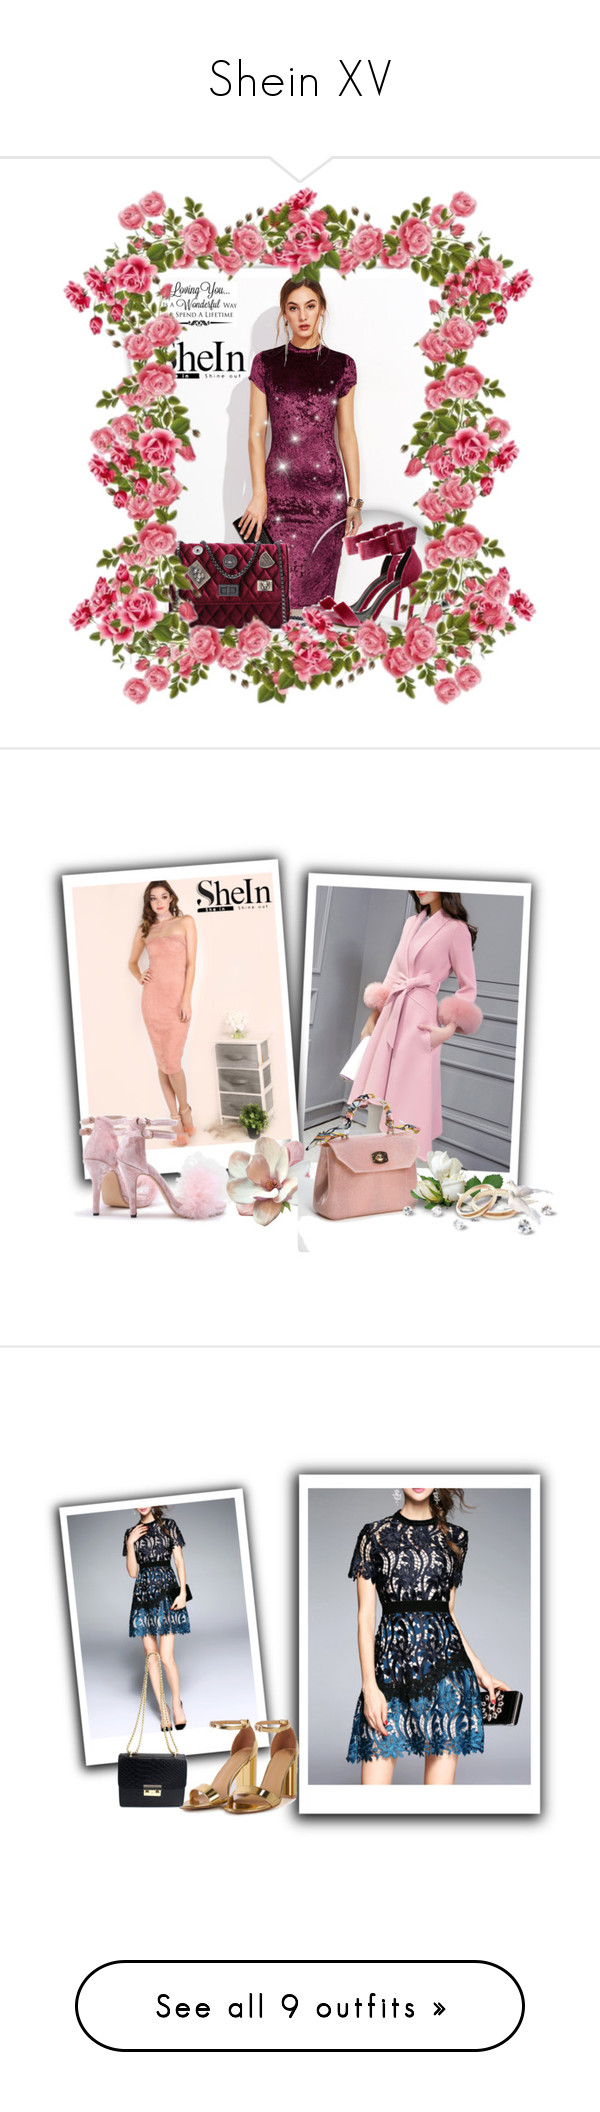 """""""Shein XV"""" by azra-90 ❤ liked on Polyvore featuring GALA, WALL, New Look, Abercrombie & Fitch, Arche, 8 Other Reasons, Dansk, Citizens of Humanity, Christian Louboutin and Givenchy"""